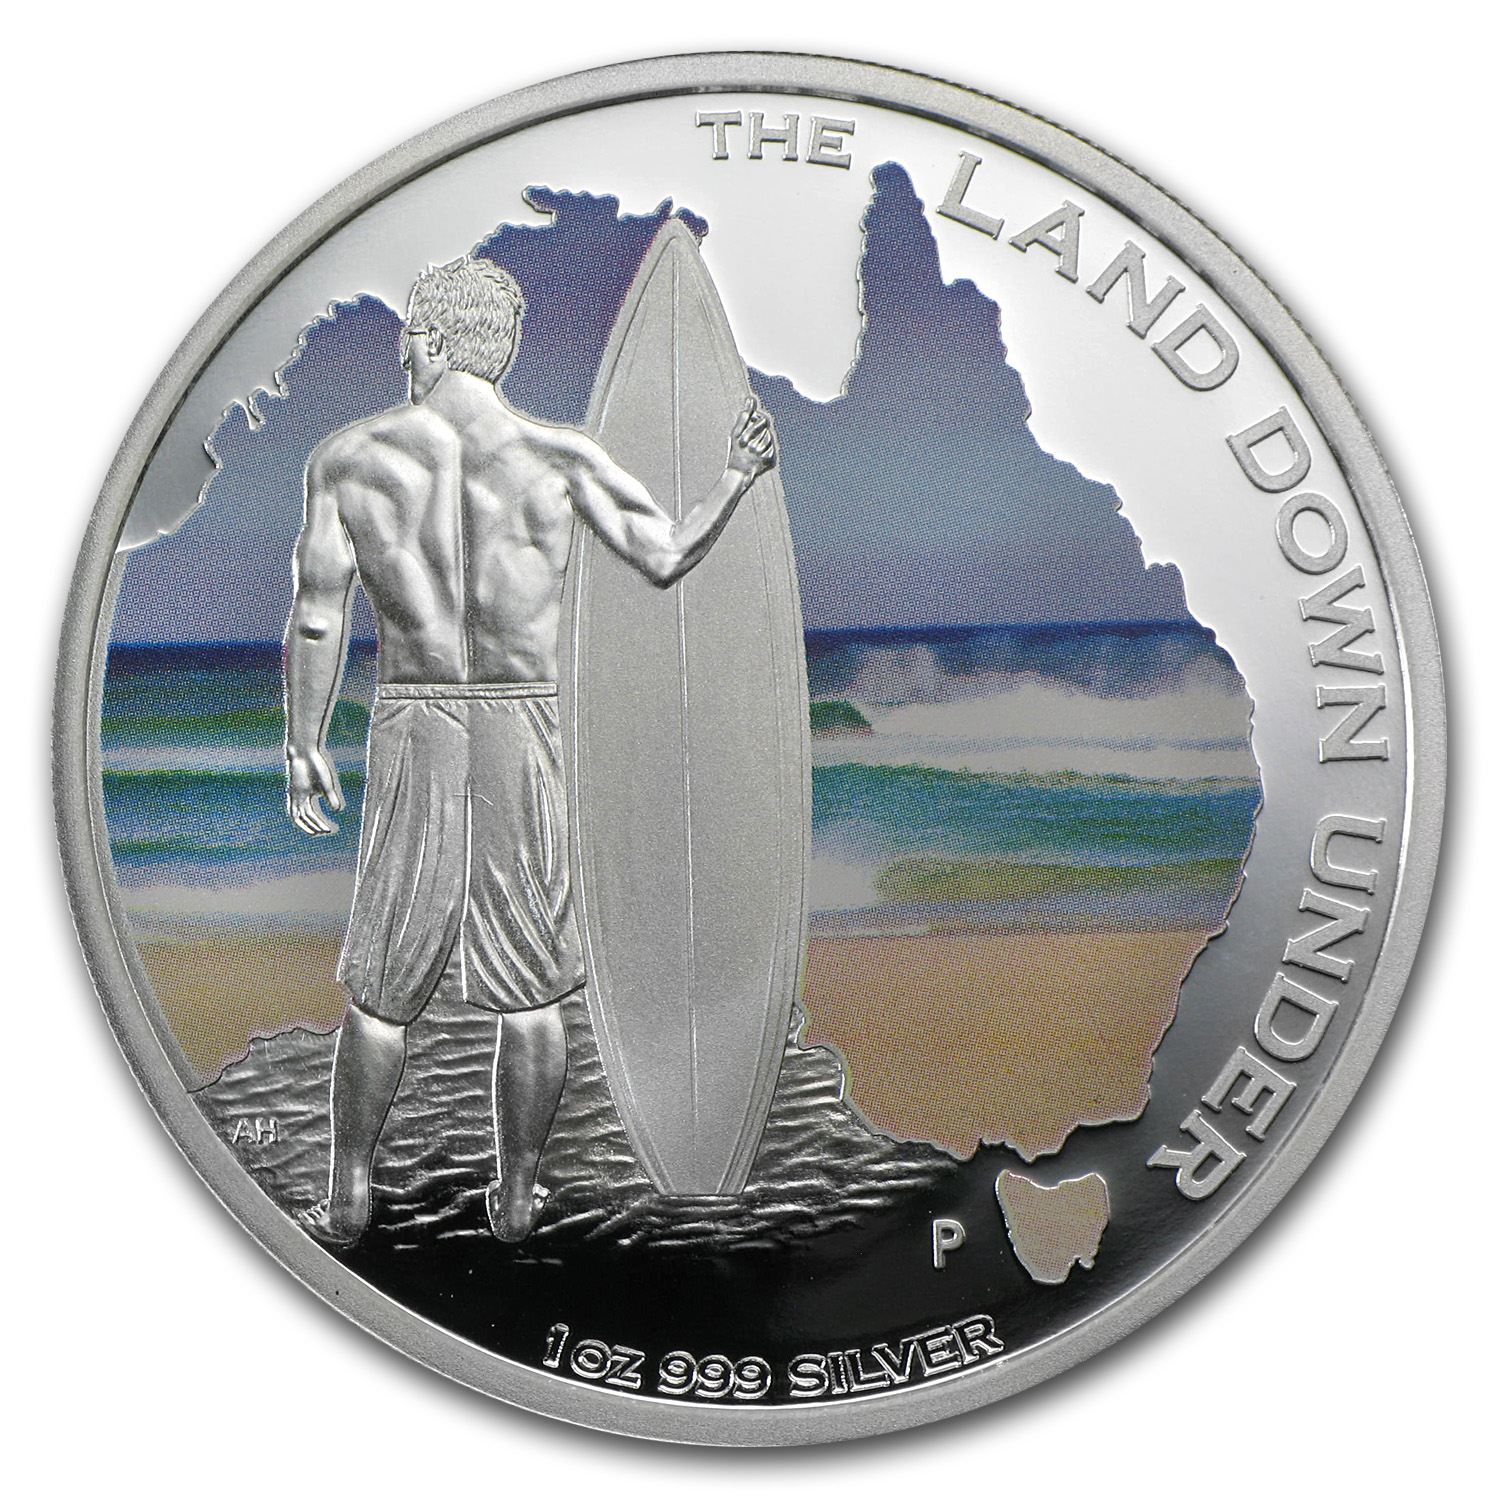 2013 Australia 1 oz Silver The Land Down Under Proof (Surfing)